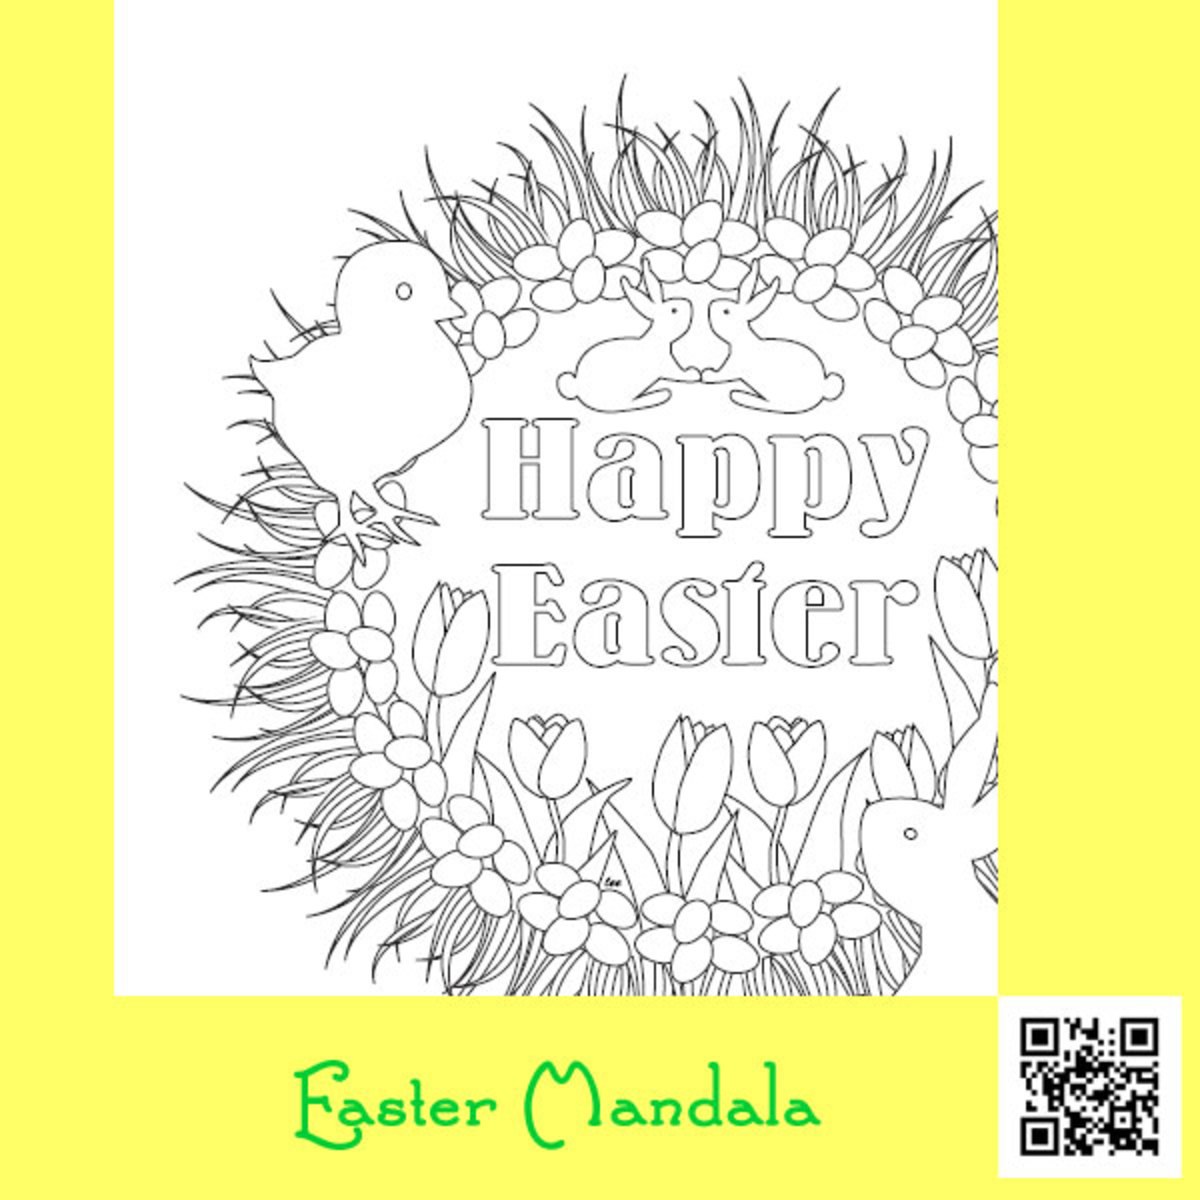 Easter Mandala Coloring Sheet Printable